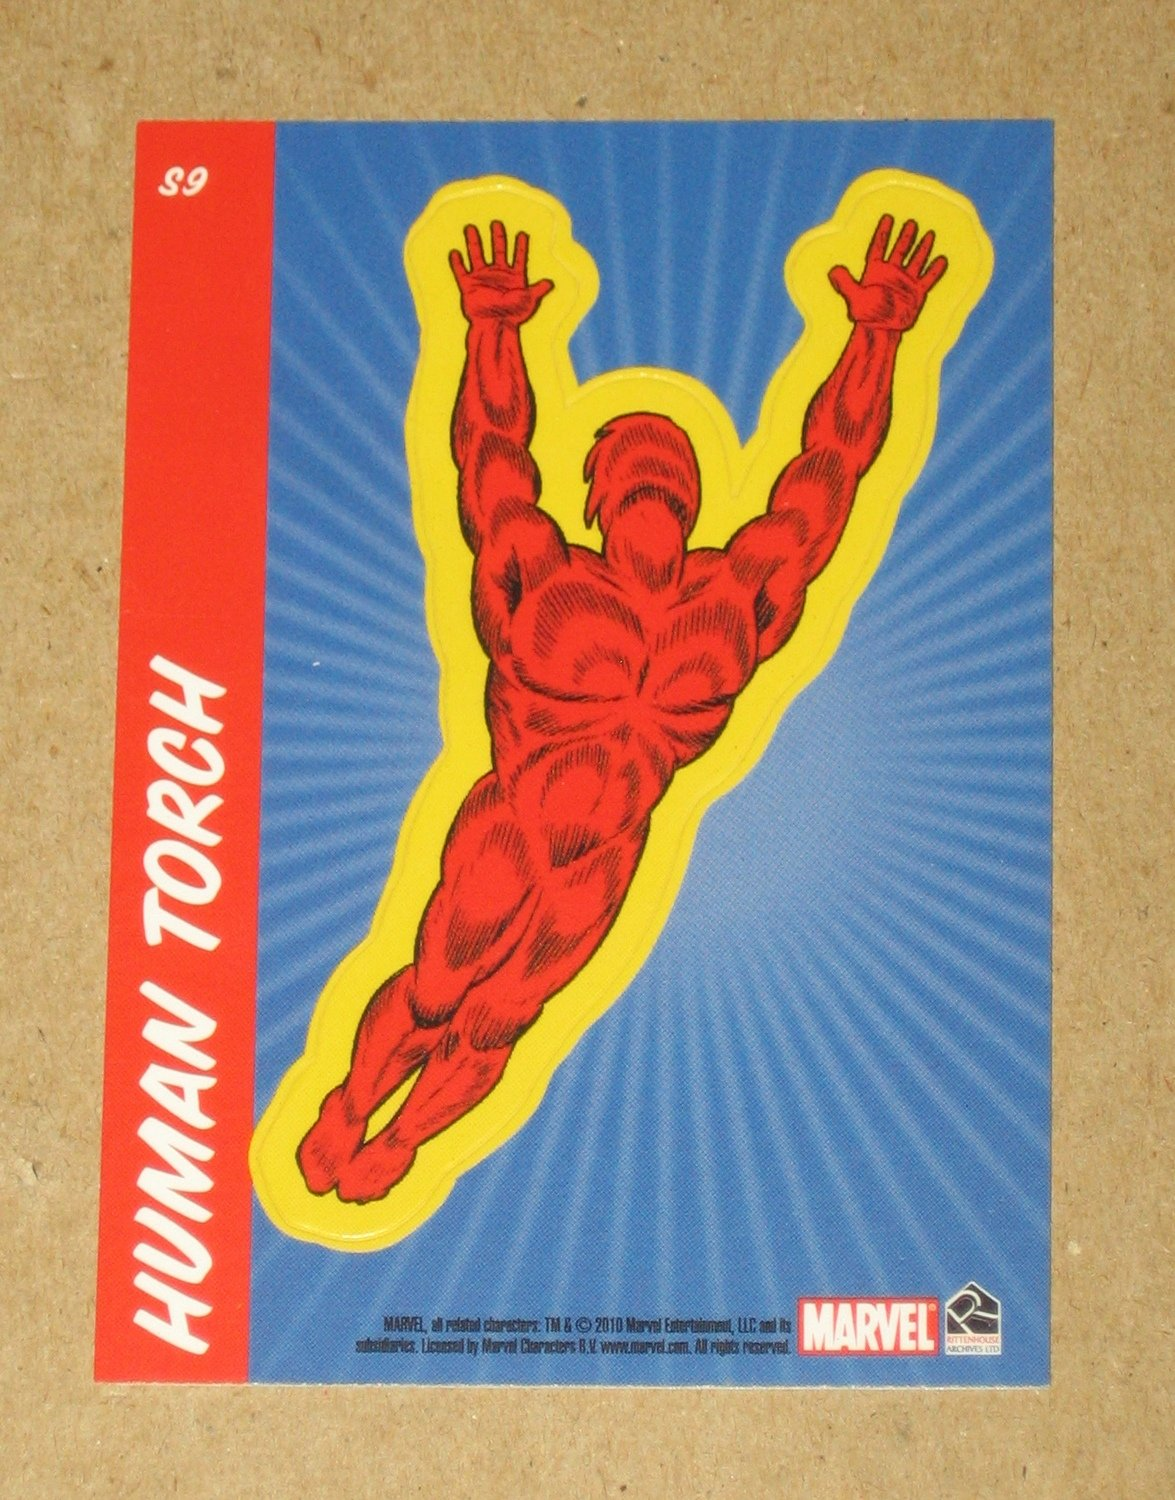 70 Years of Marvel Comics (Rittenhouse 2010) Sticker Card S9- Human Torch EX